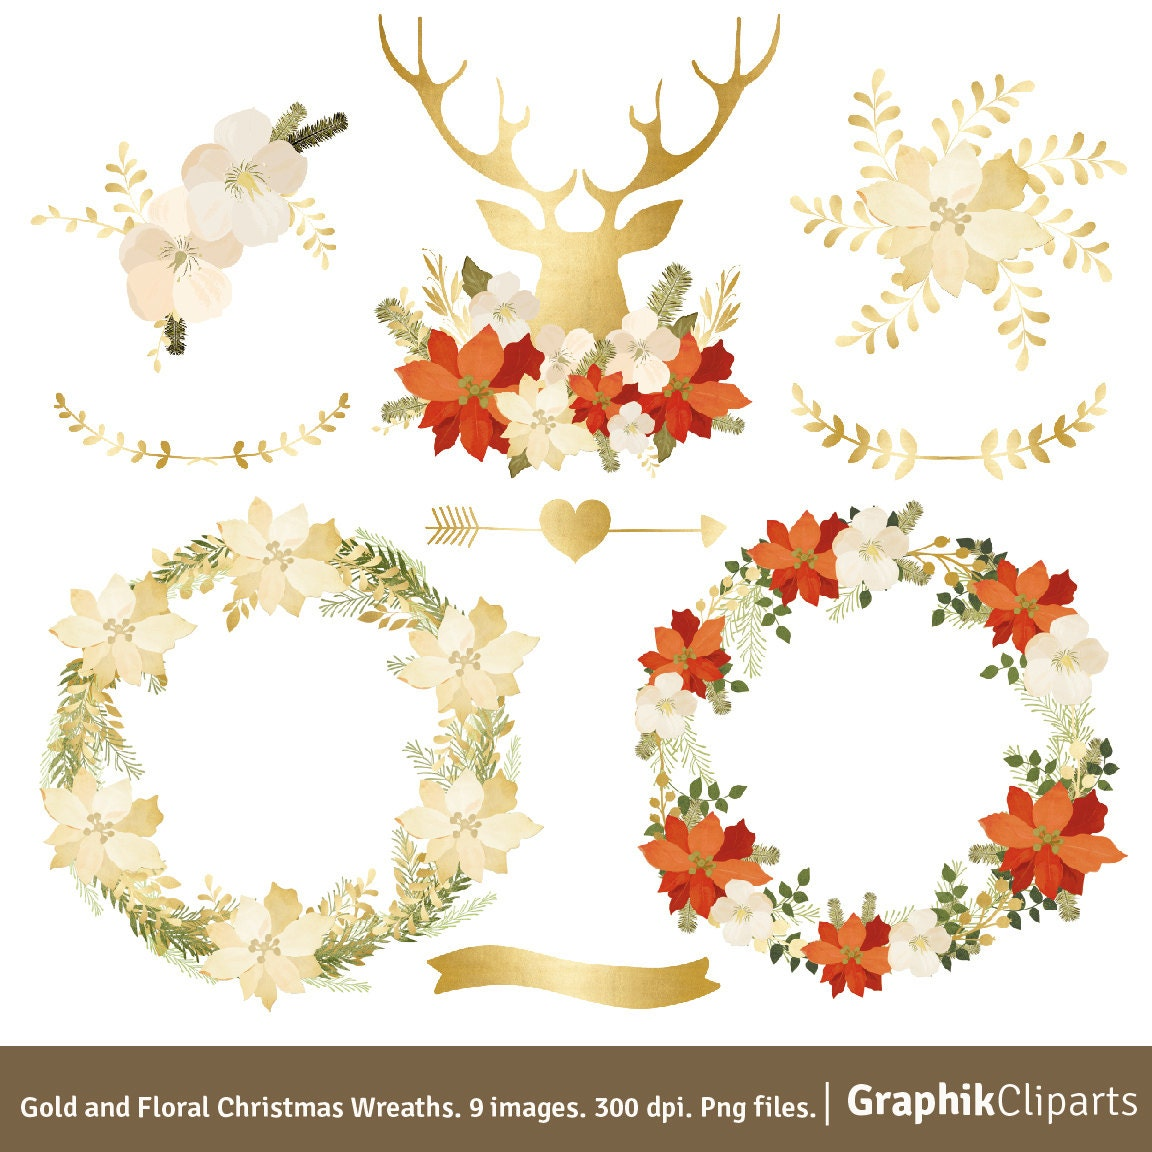 Gold and Floral Christmas Wreaths FREE BONUS Floral Quote.